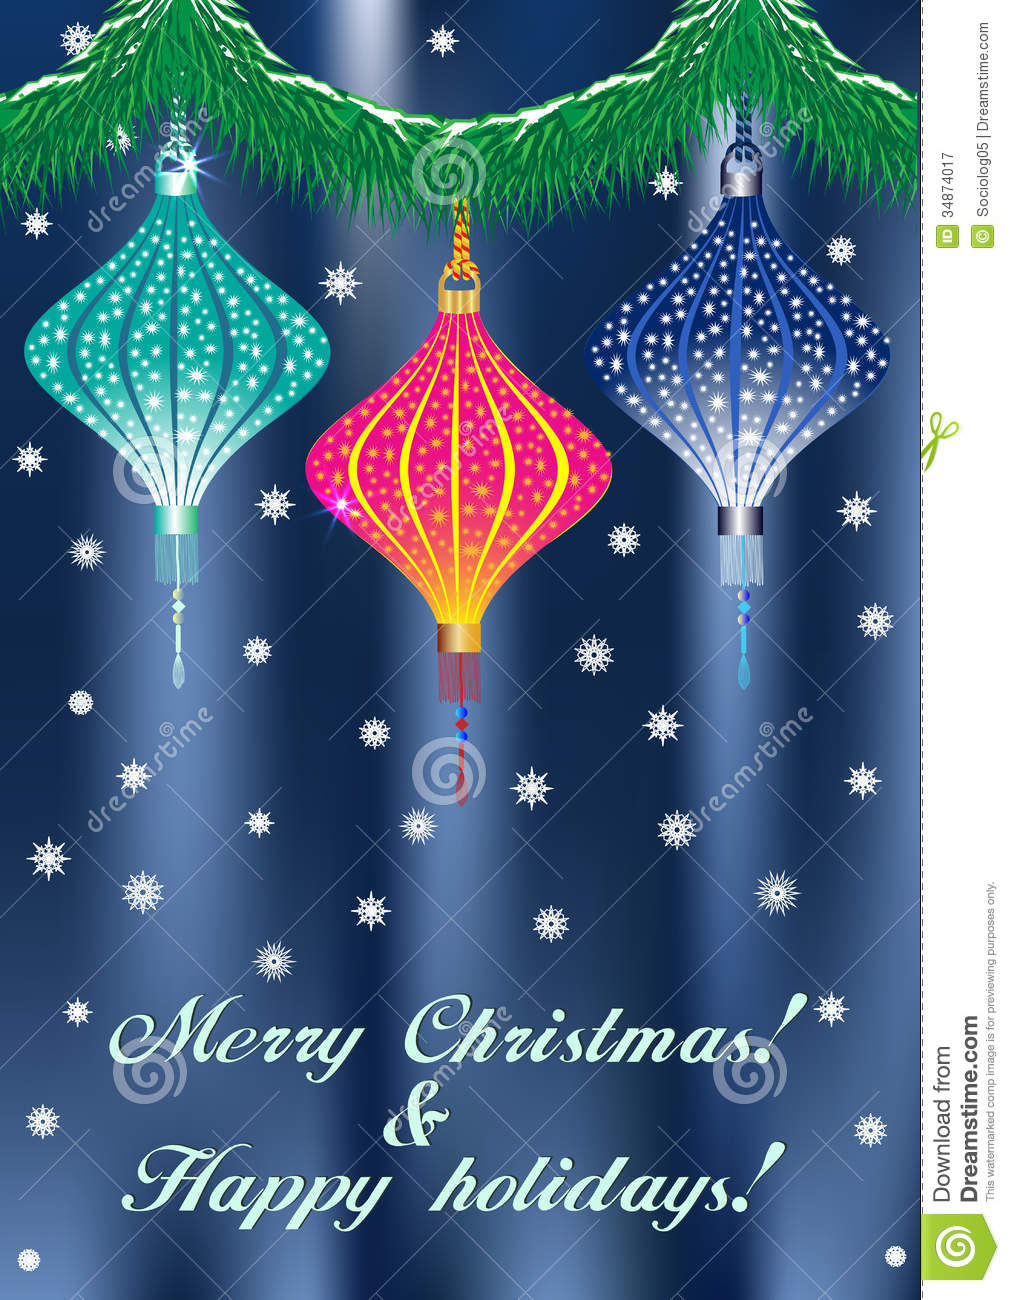 Christmas Card With China Lantern Stock Vector - Illustration of ...